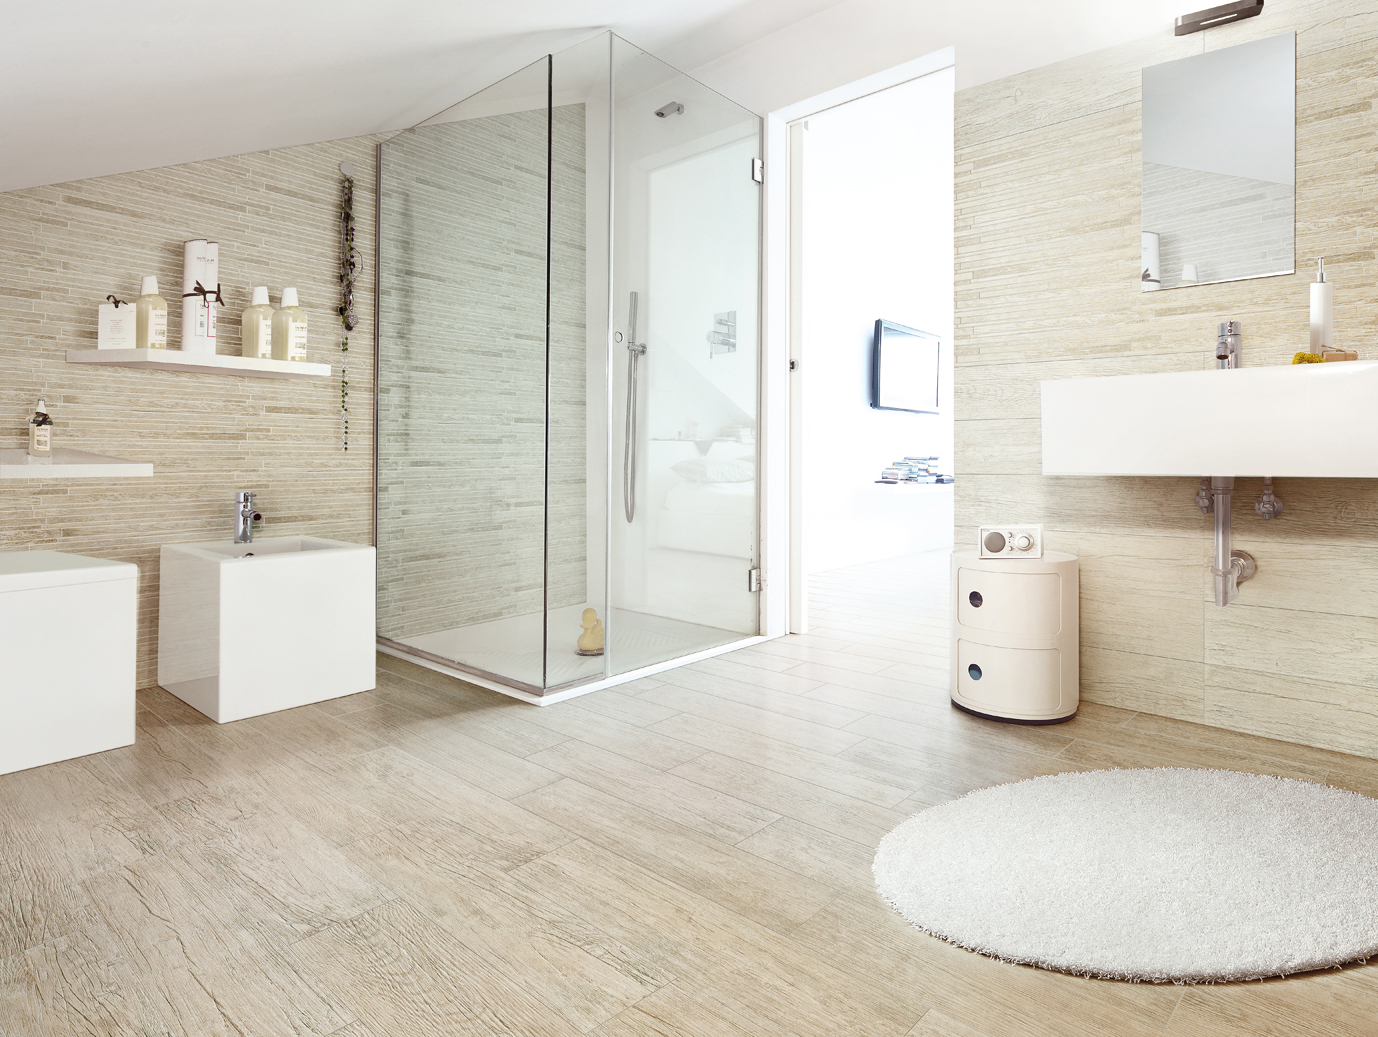 Bathroom Tiles Wooden Floor With Cool Photo In Spain | eyagci.com